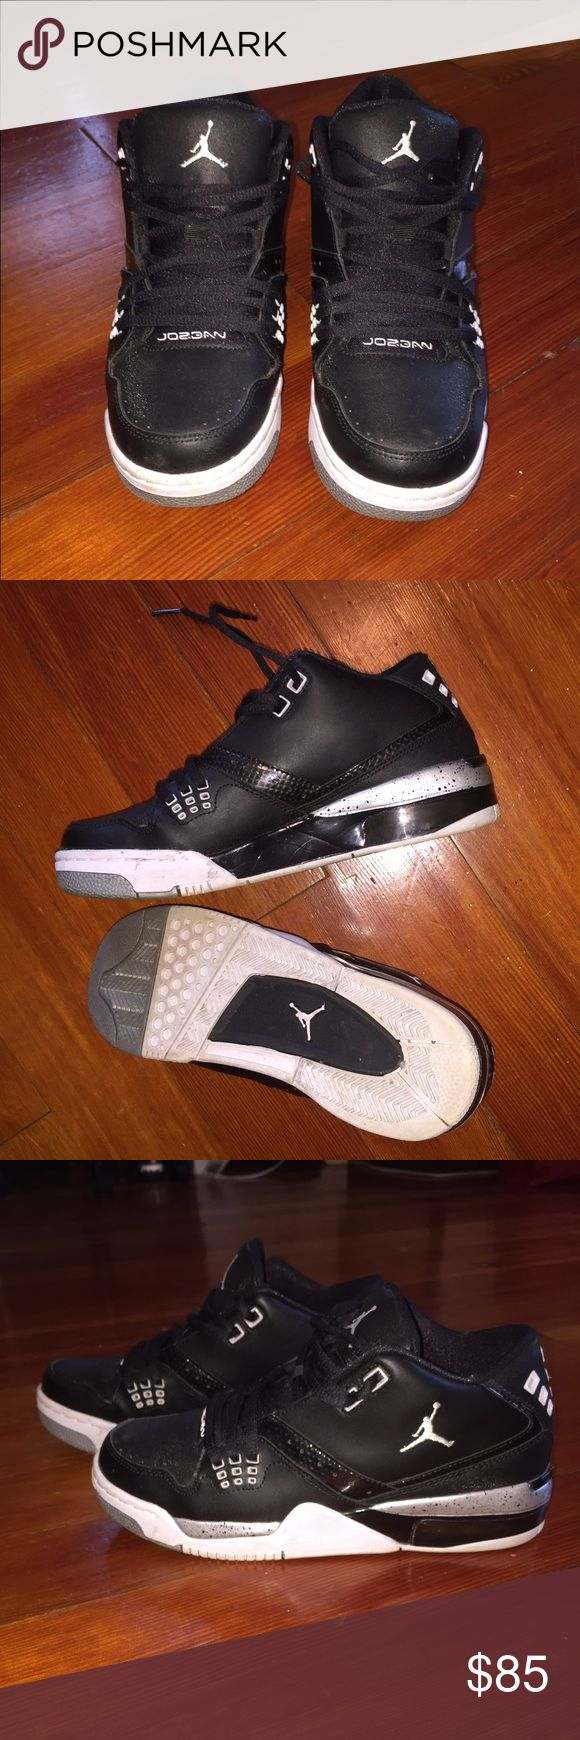 Jordan Flight 23 BG size 6.5 mens Jordan Flight 23 BG in black/white/metallic silver. Size 6.5 men's, size 8 women's. Great condition! Authentic Nike Jordans. Great condition, very light wear! Nike Shoes Sneakers